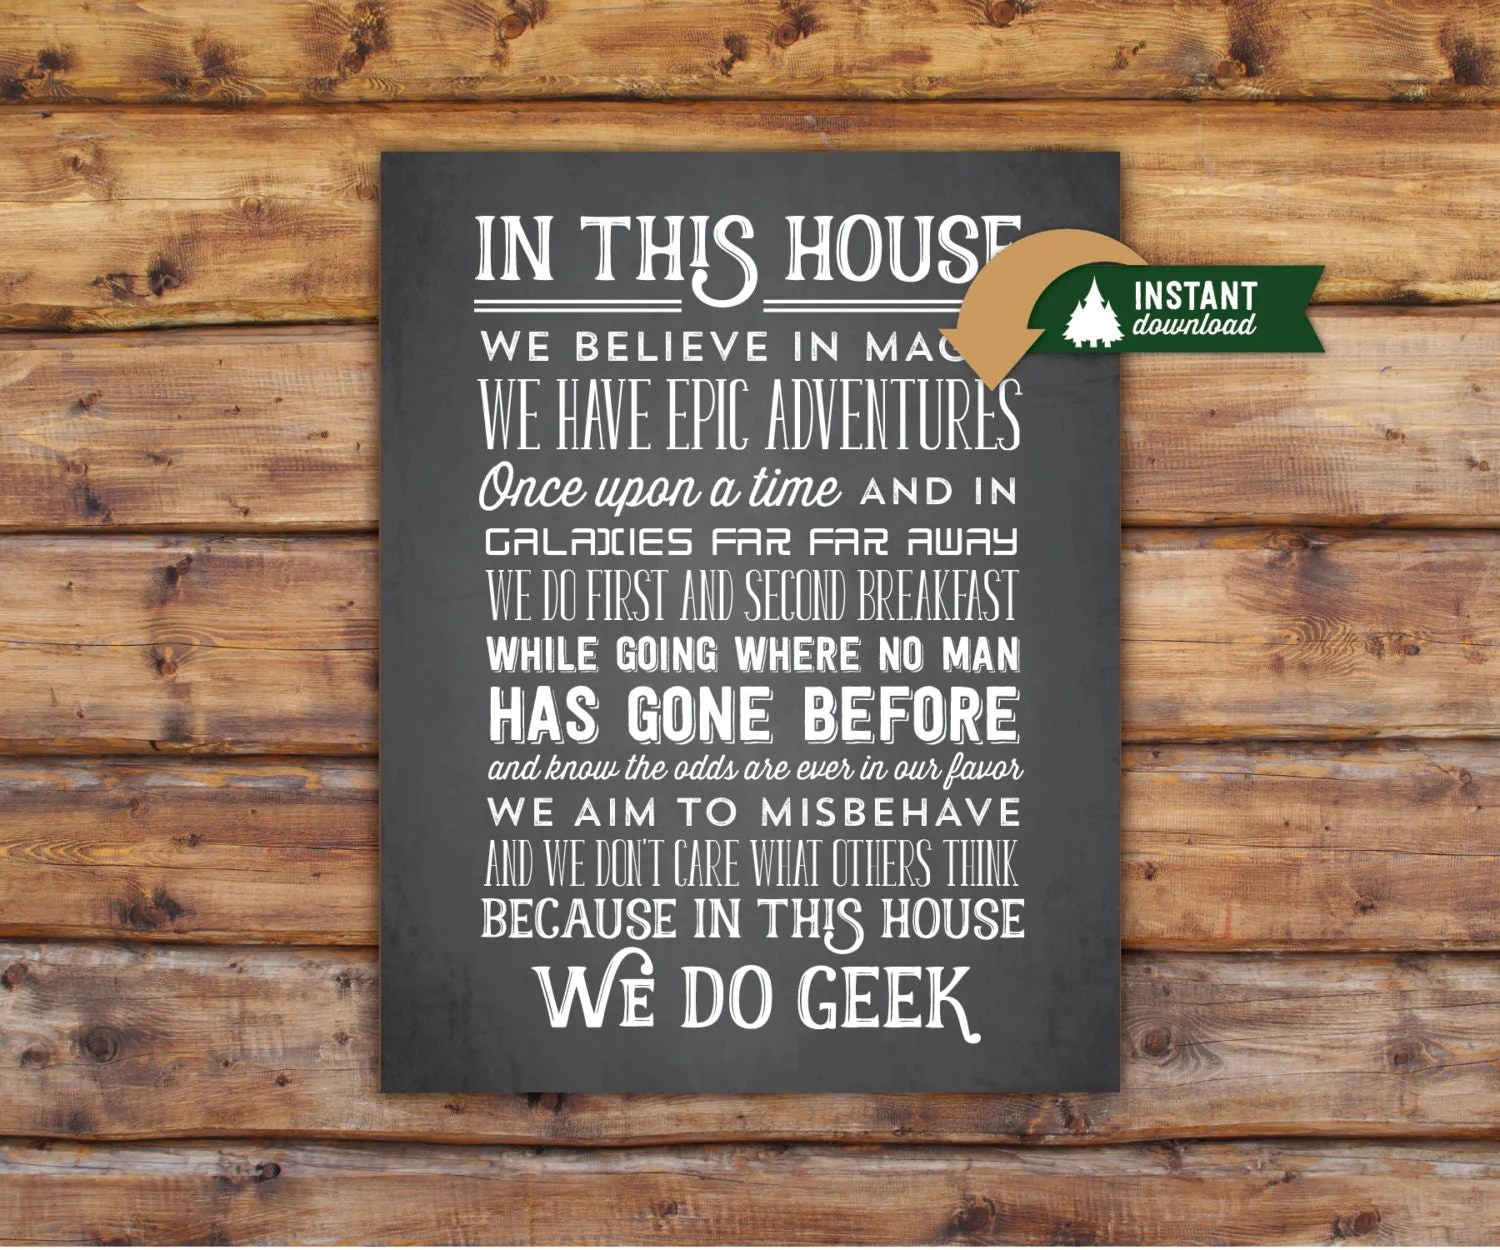 Geek Wall Art In This House We Do Geek Wall Art 11x14 Instant By